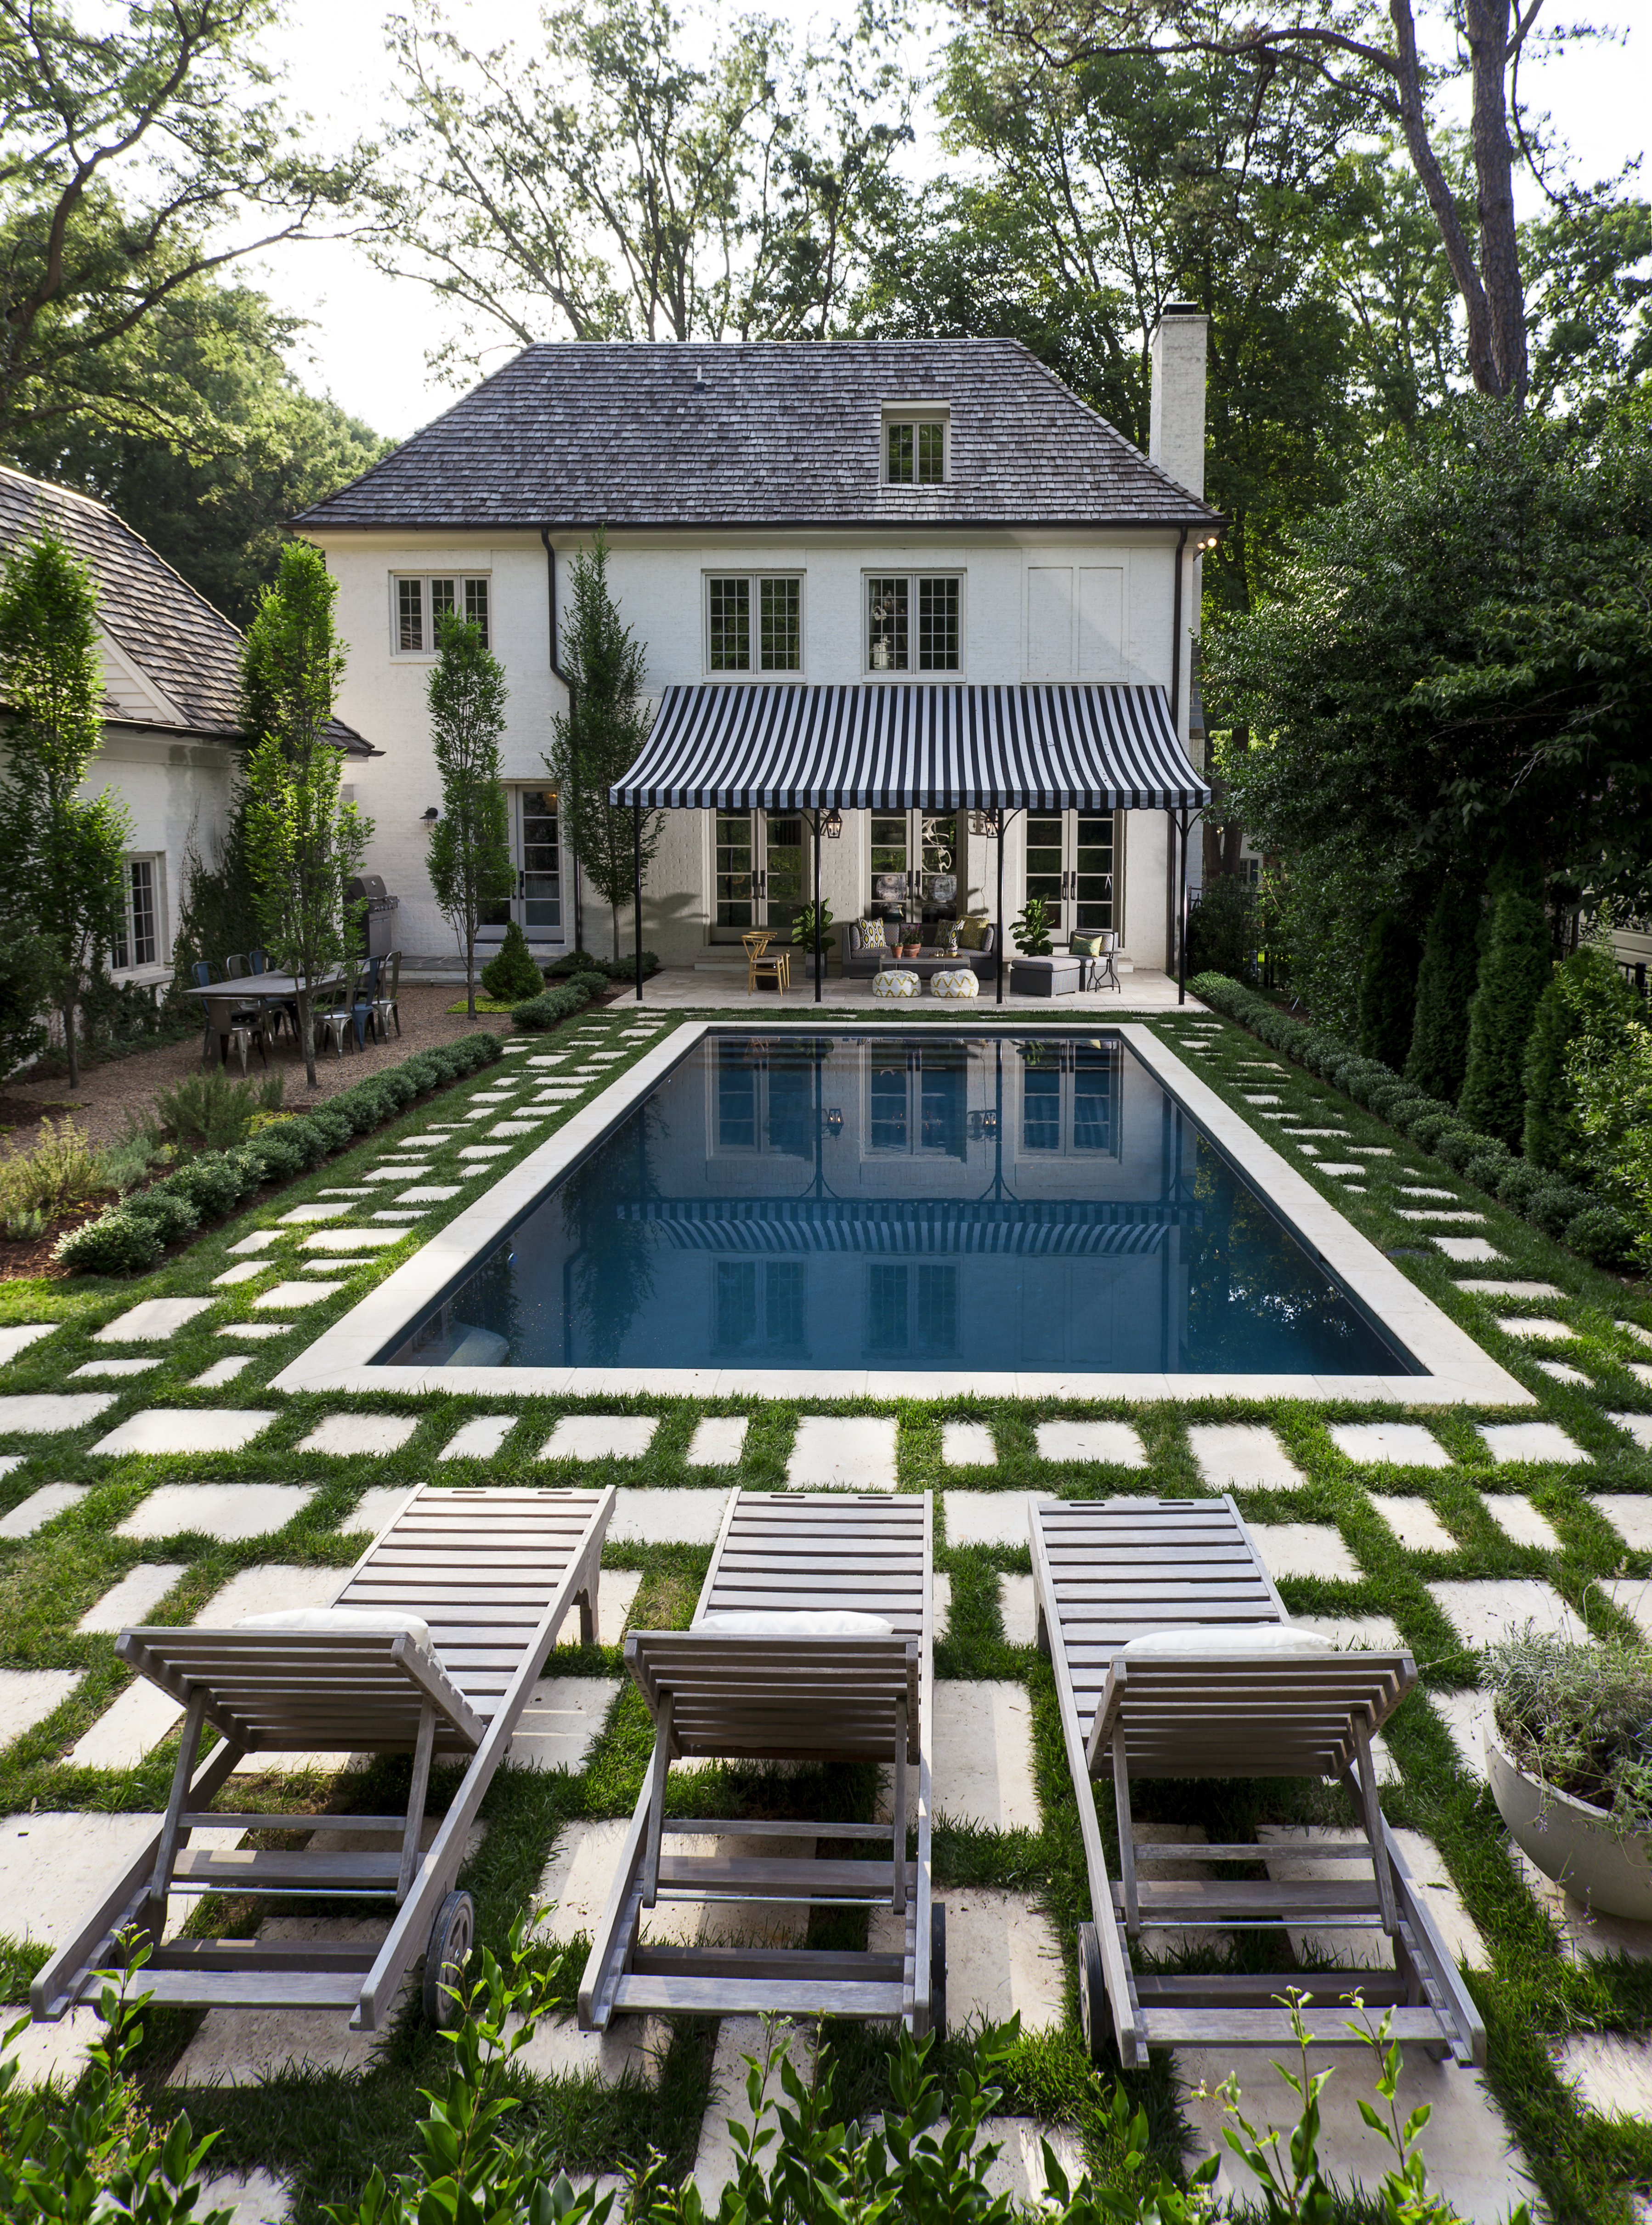 Return on your investment when investing in a swimming pool